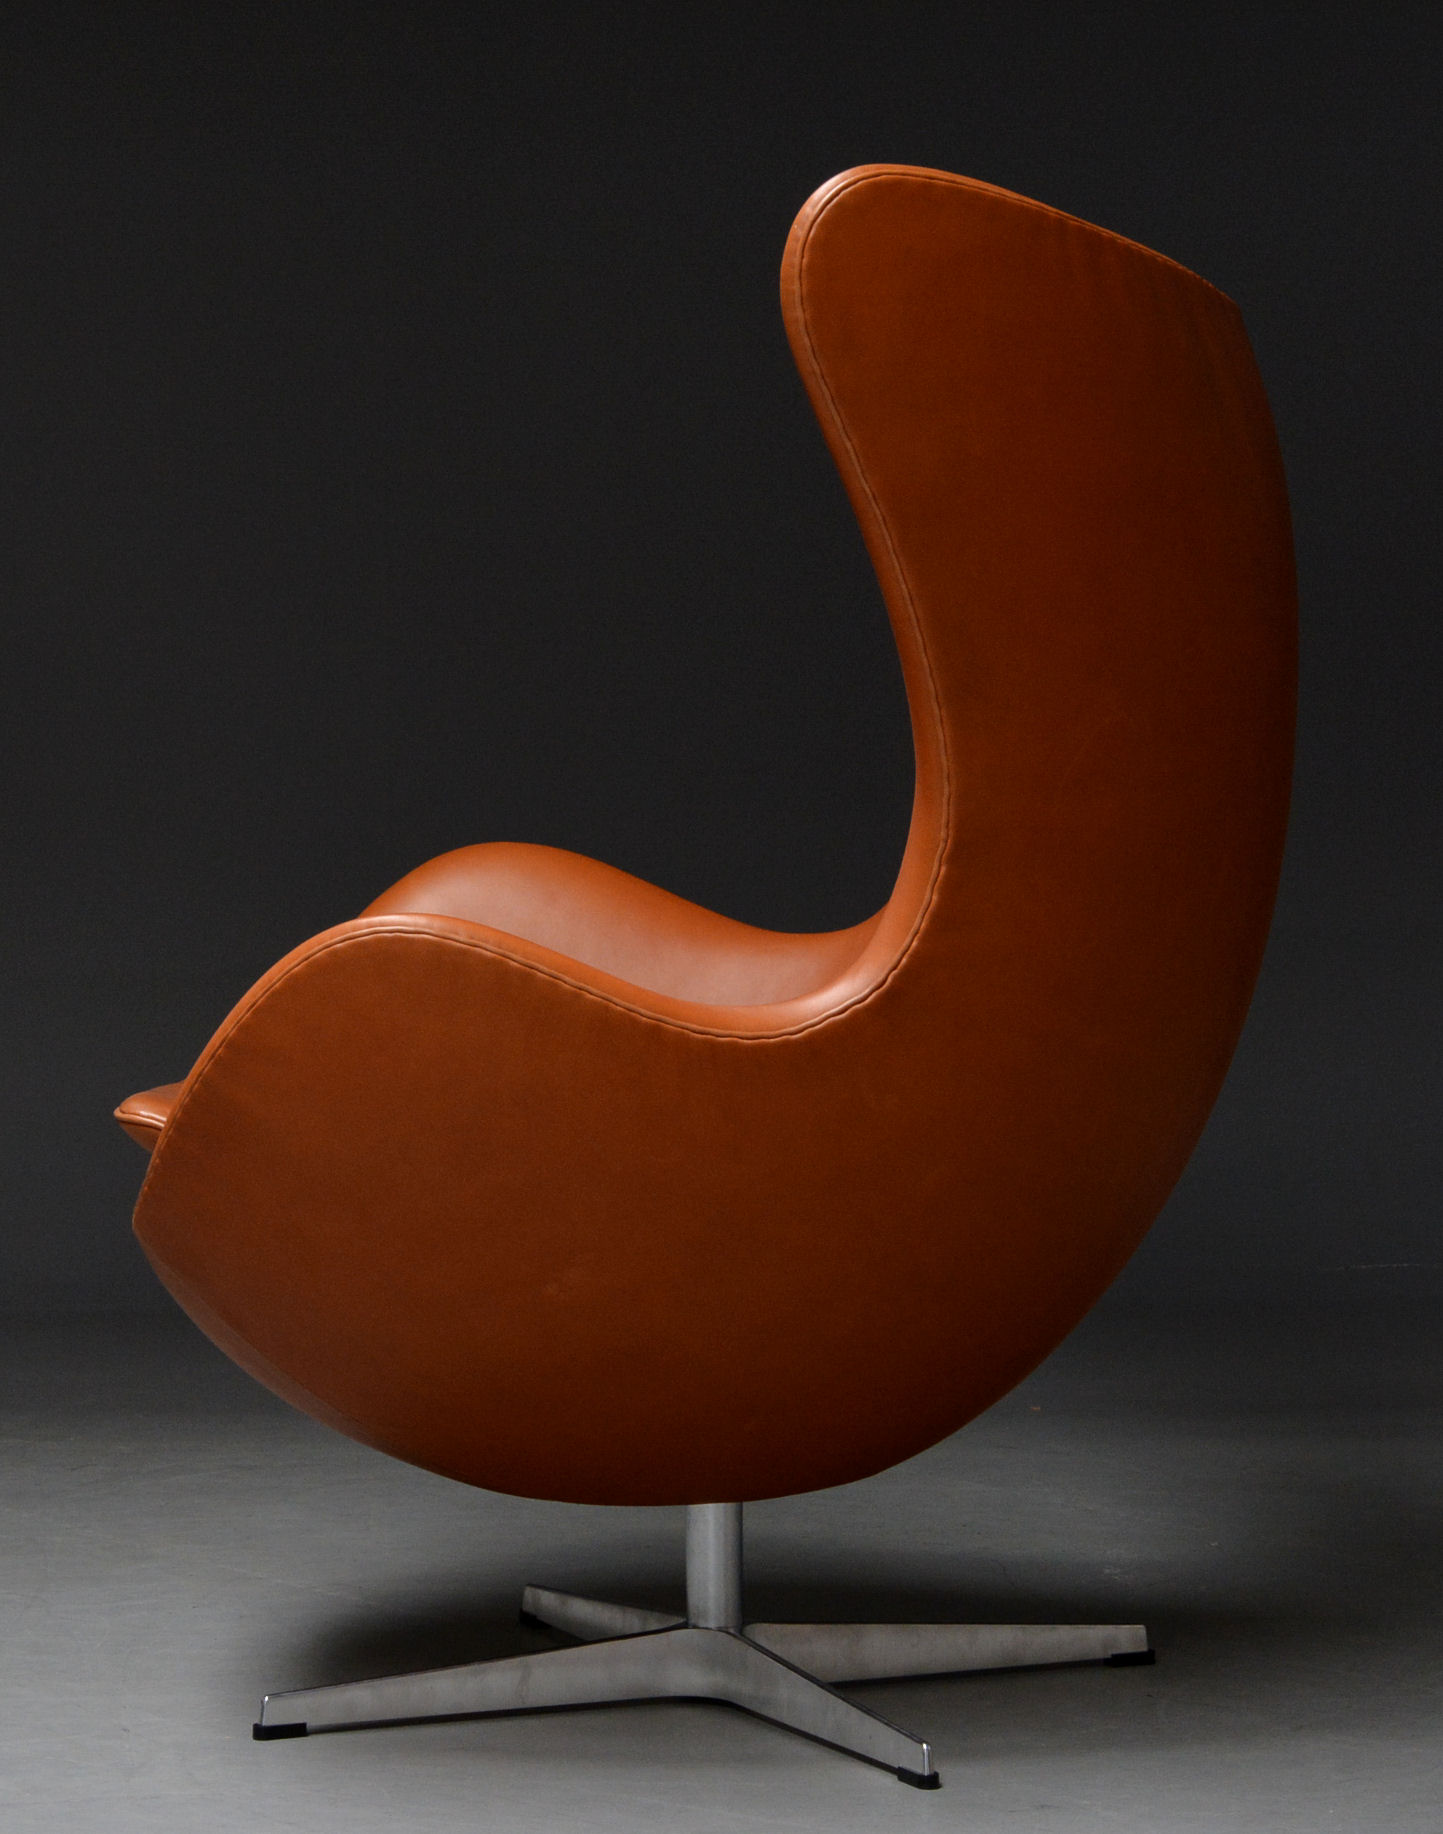 Arne Jacobsen: Lounge chair with tilt function Egg - 'Elegance' leather. 'Brown Label' from 2014